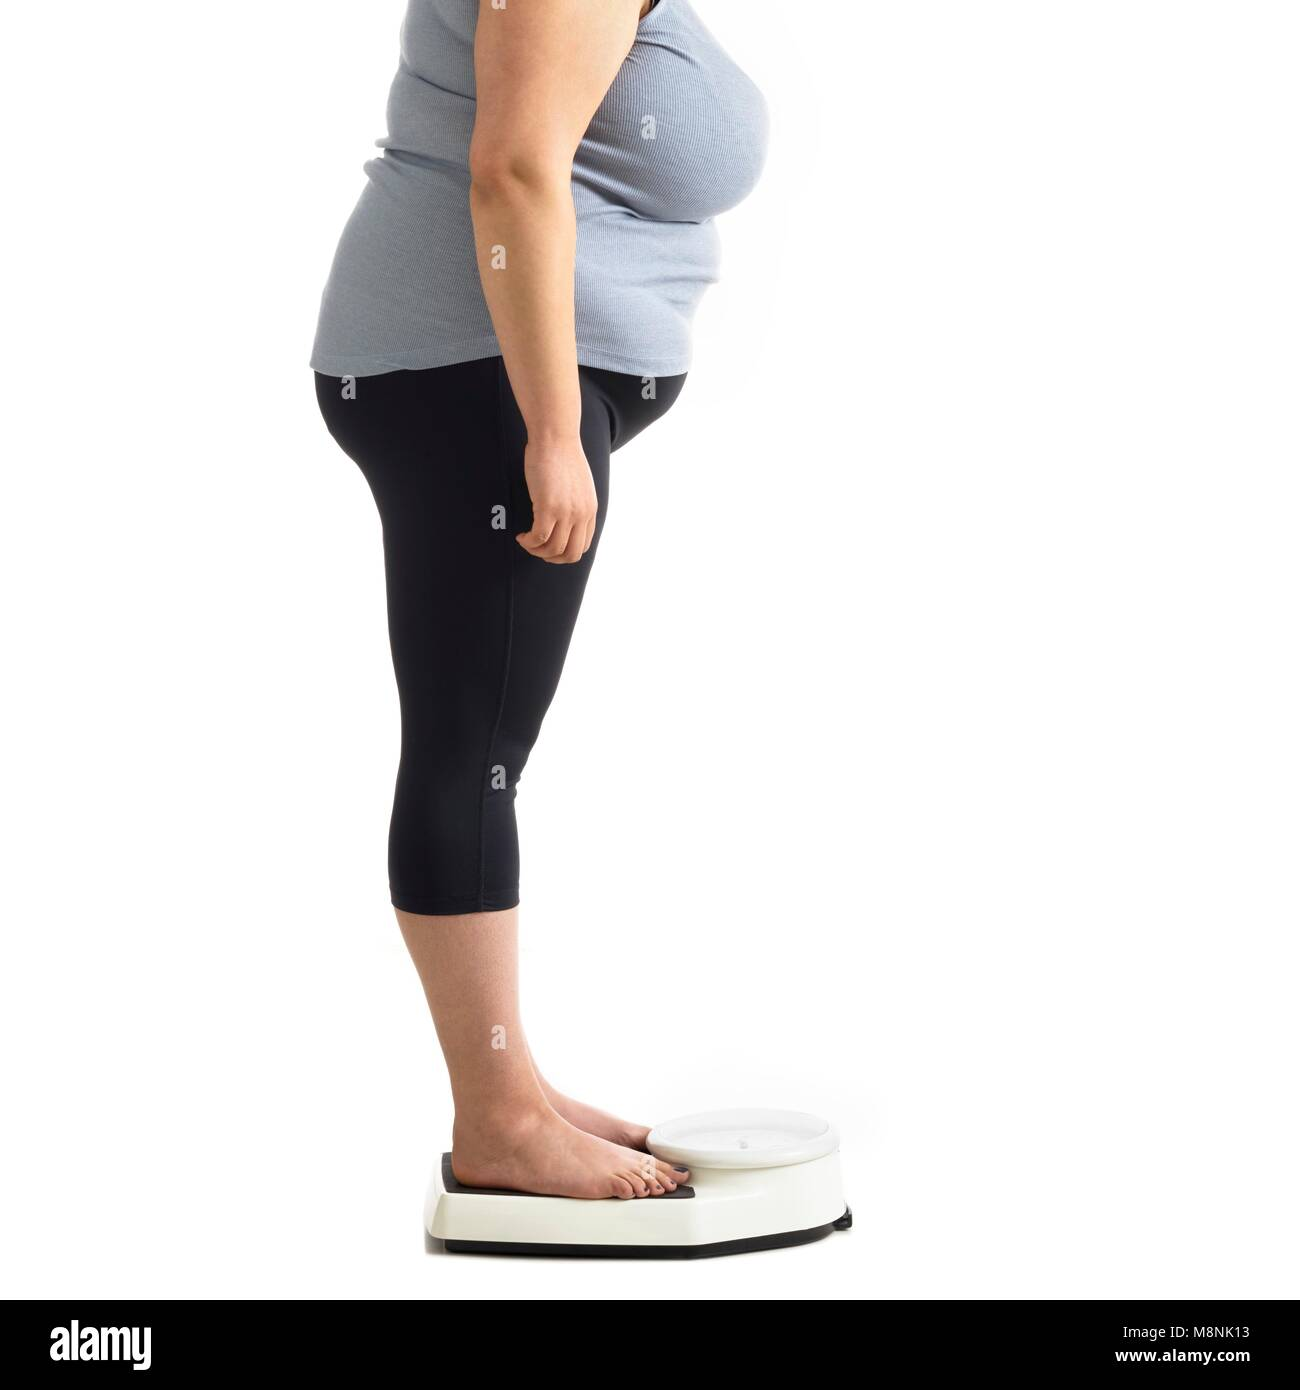 Overweight woman standing on weighing scales. - Stock Image